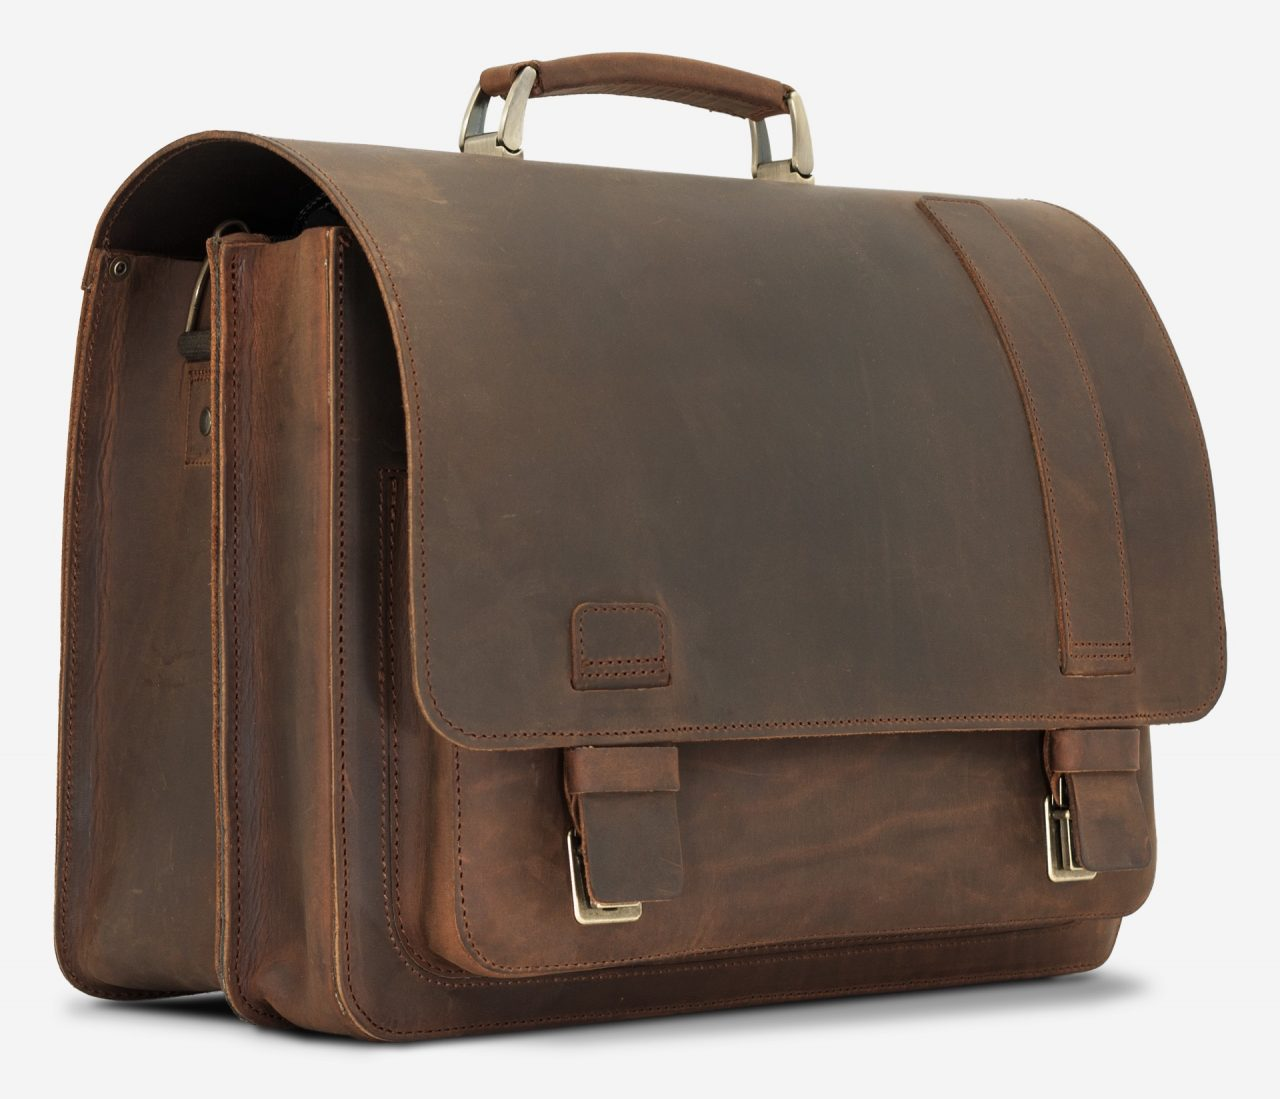 Side view of the vegetable-tanned brown leather satchel briefcase for doctors.